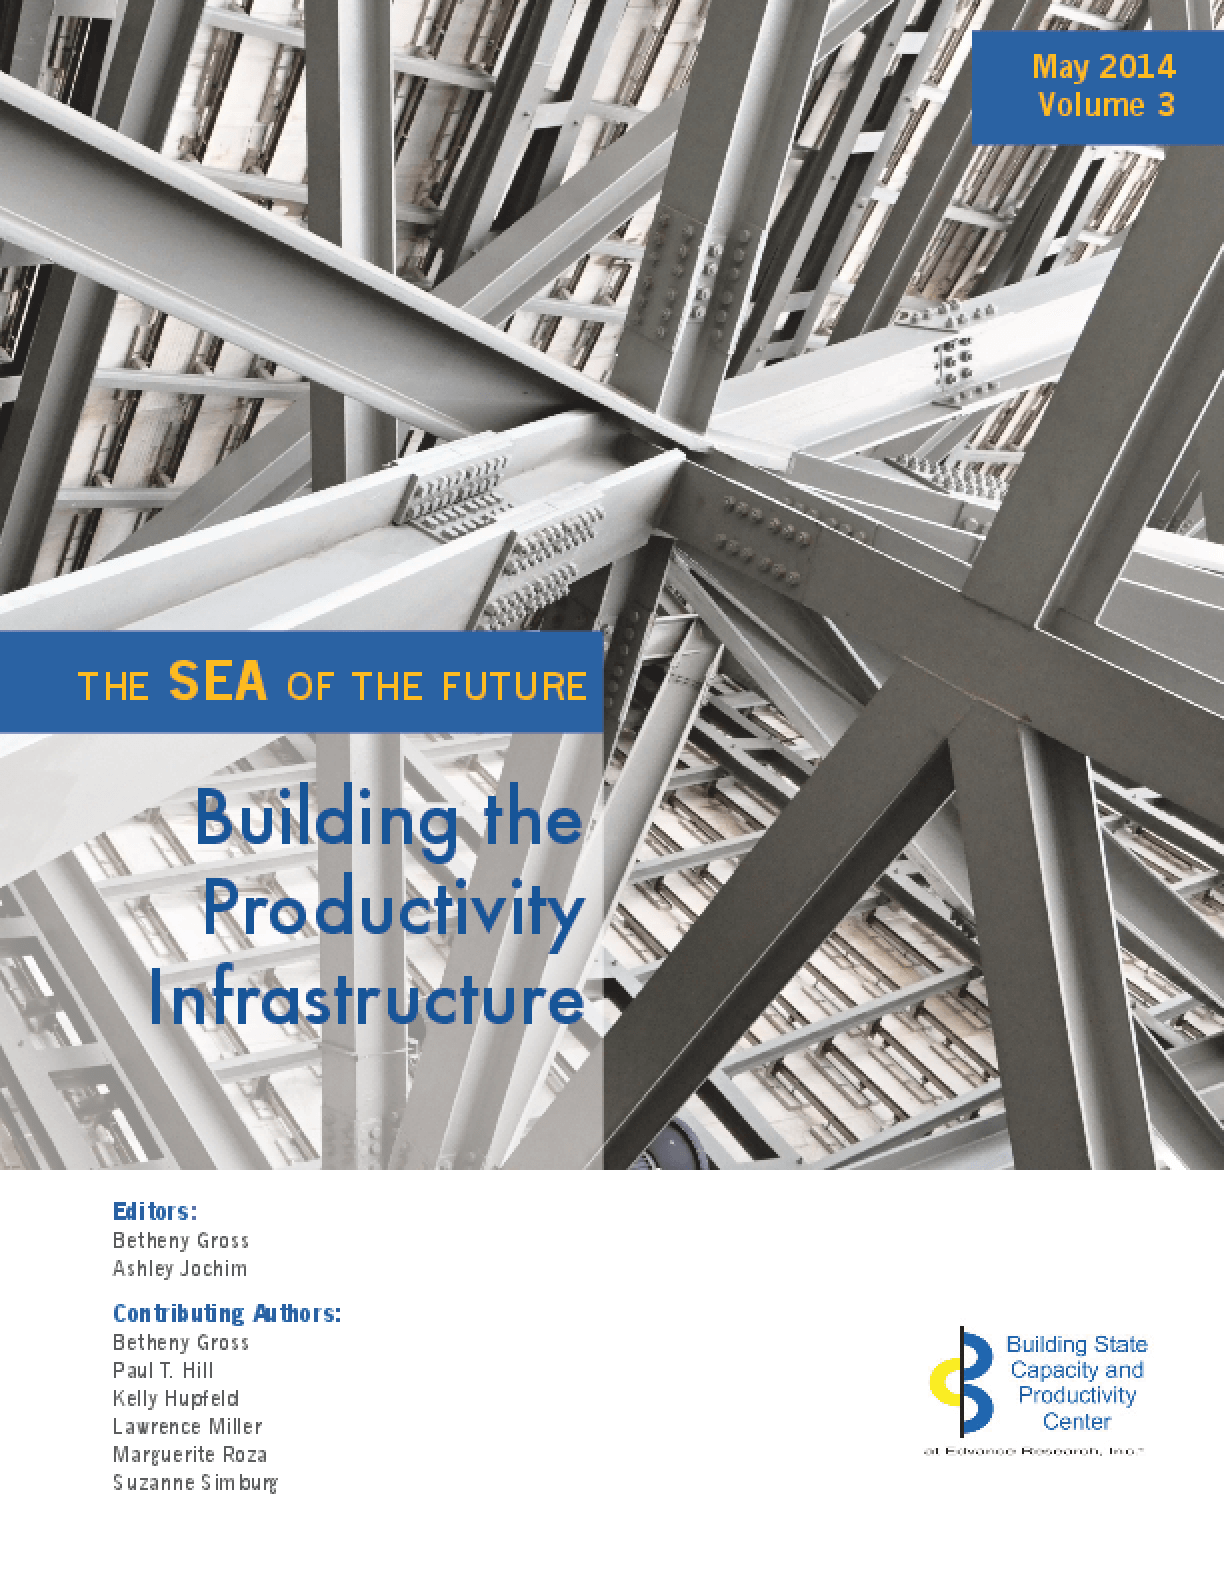 The Sea of the Future: Building the Productivity Infrastructure